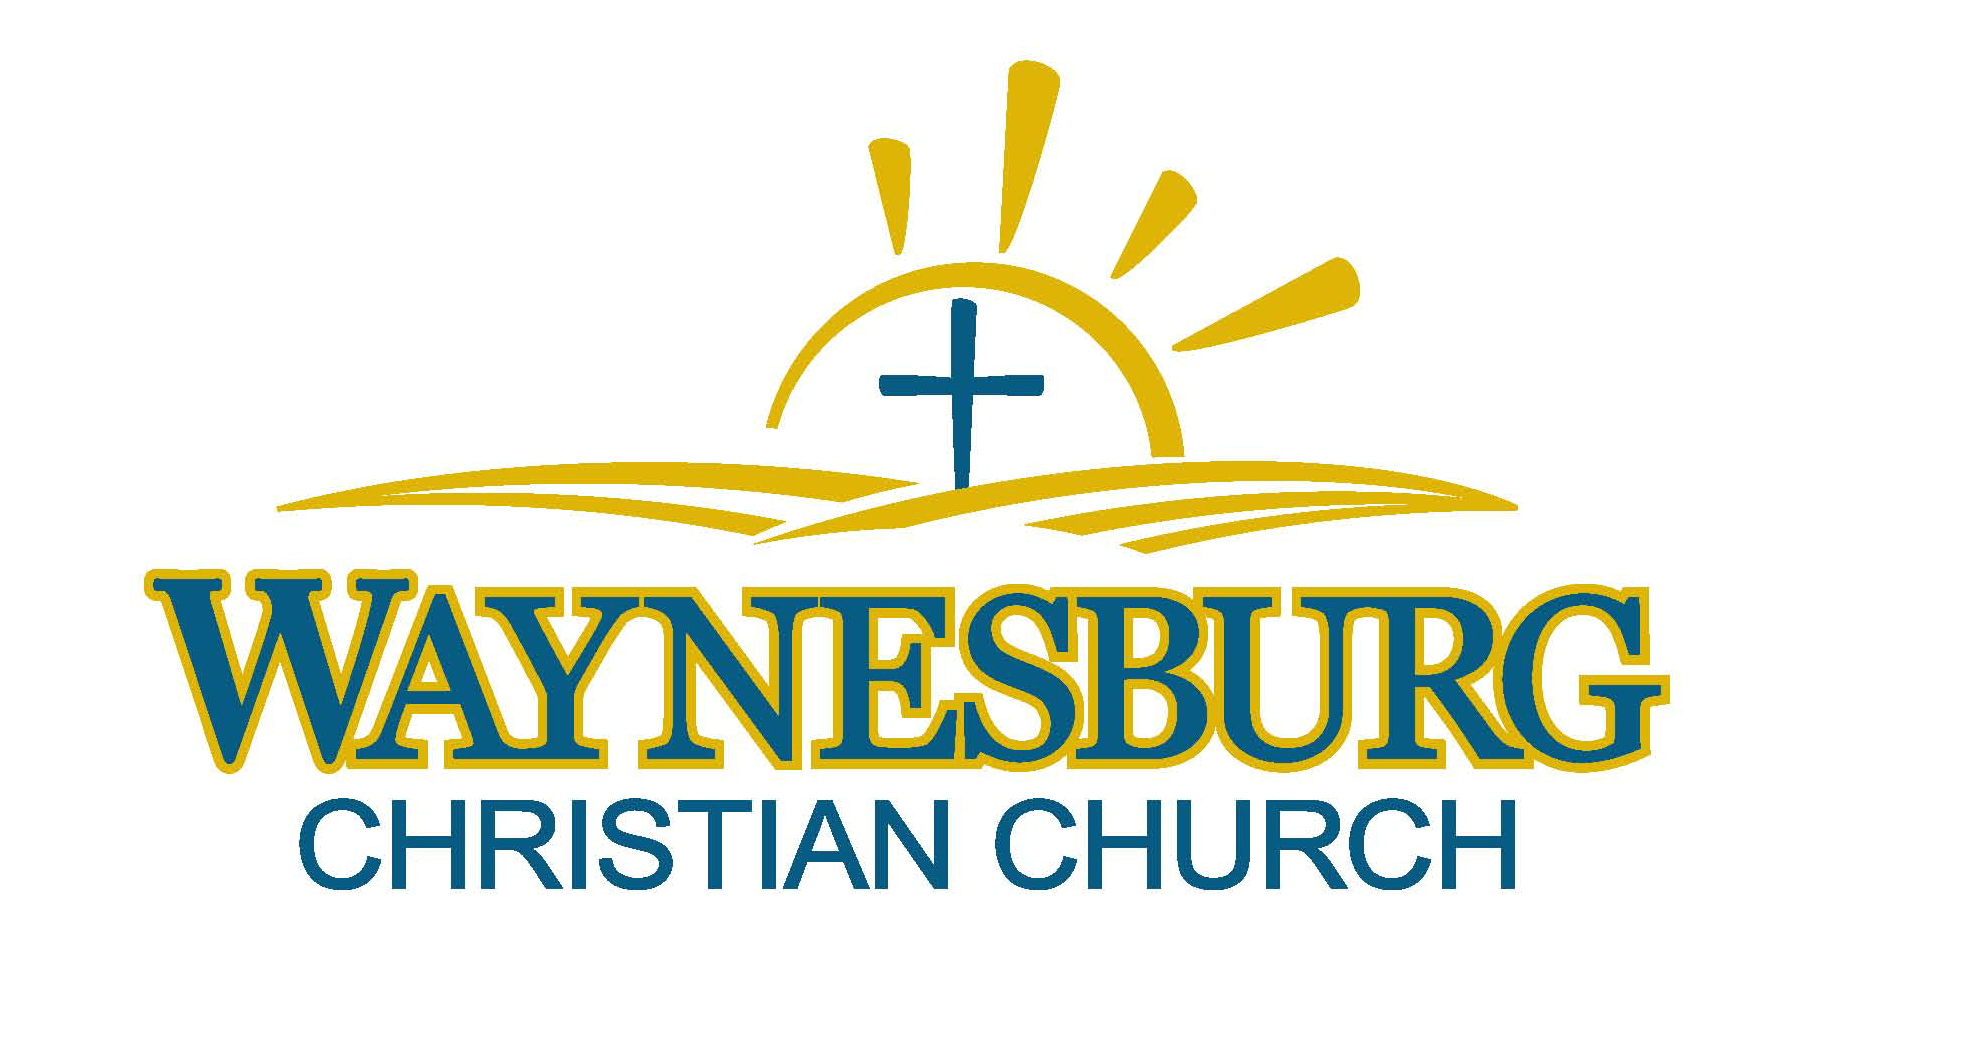 waynesburg christian personals Waynesburg christian church, westport, indiana 560 likes 76 talking about this 559 were here welcome to waynesburg christian church's facebook.